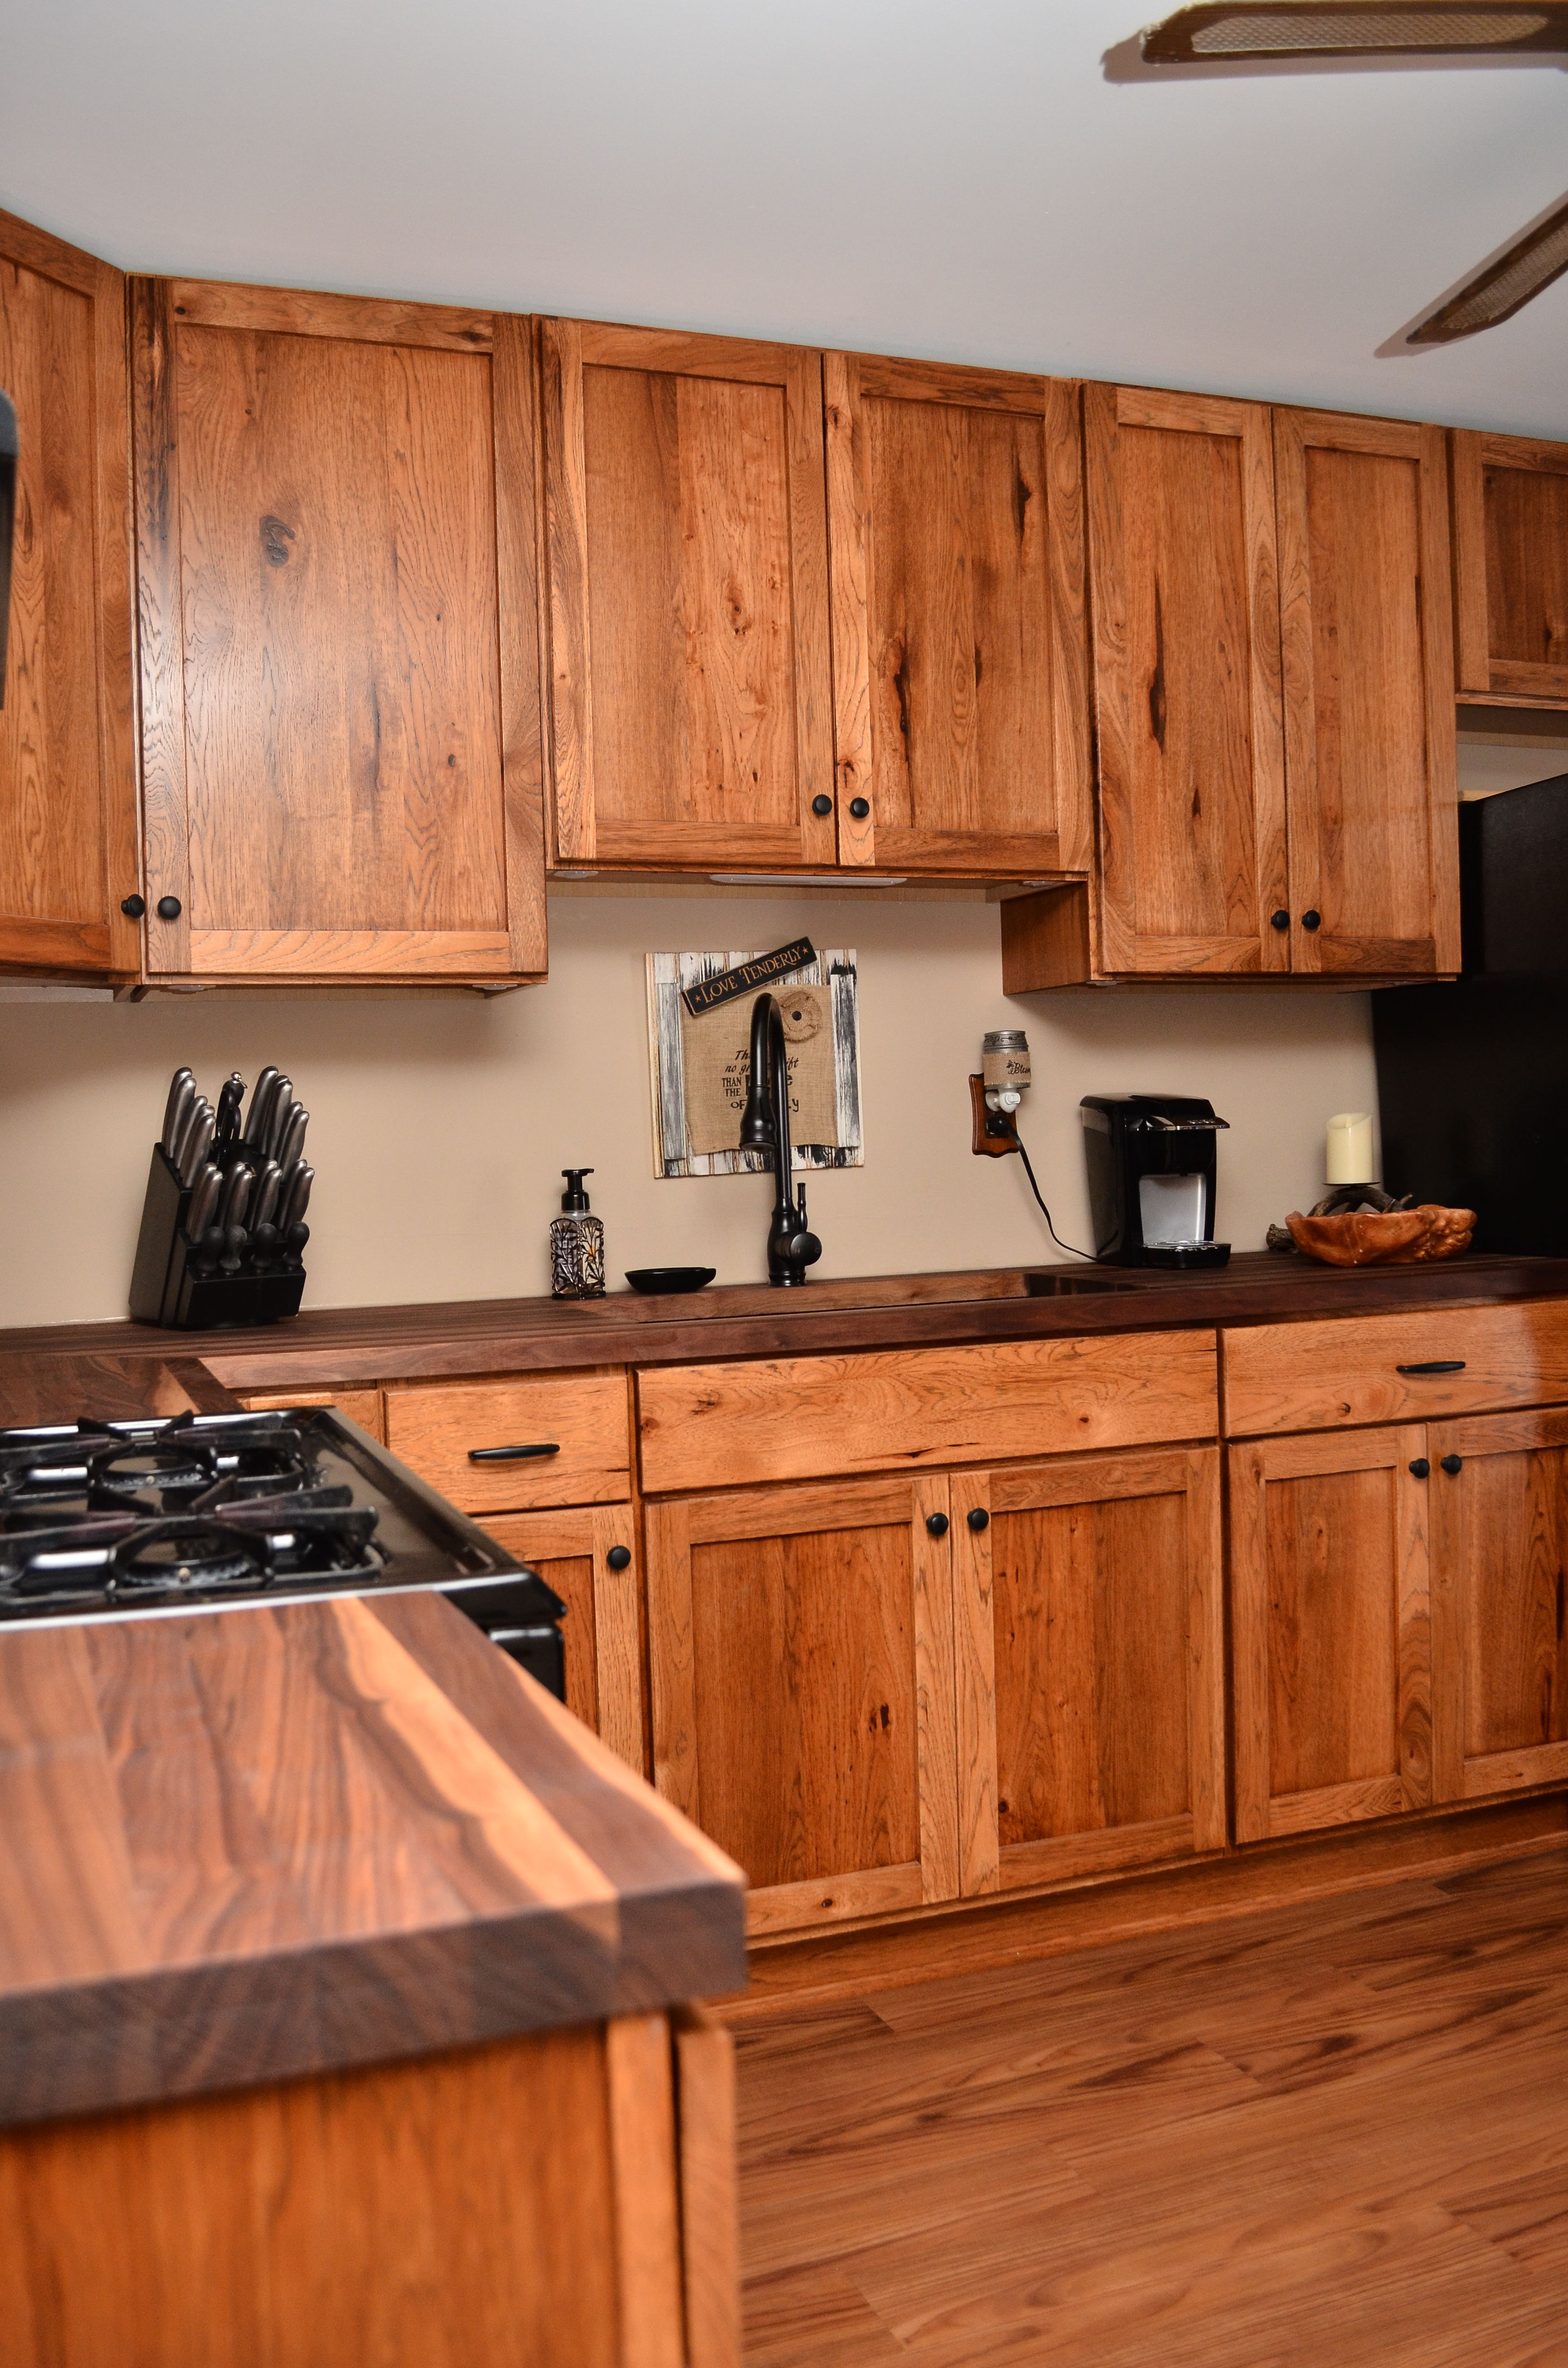 Haas Signature Shakertown V Rustic Hickory Pecan Hickory Cabinets Kitchen Cabinets Kitchens Bathrooms